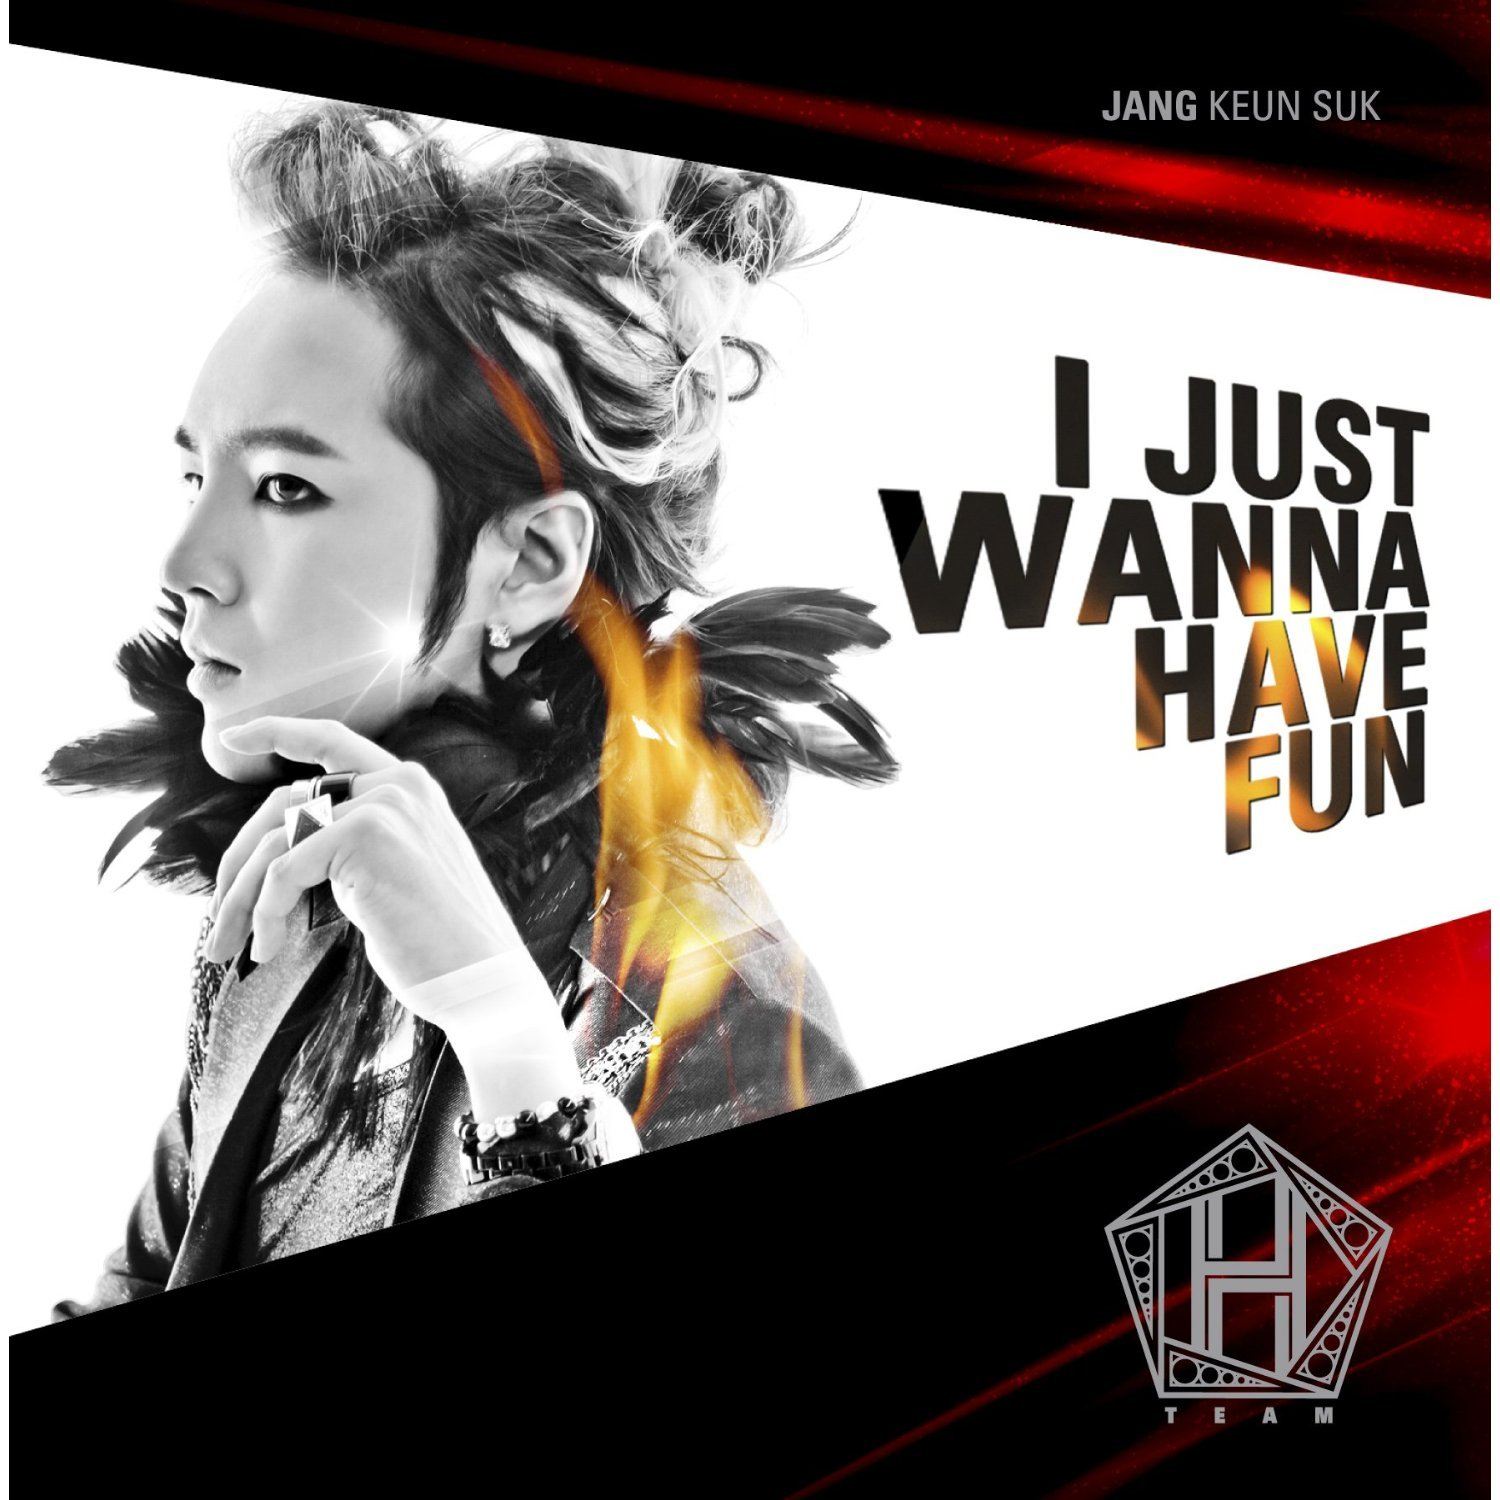 The Eels Family Hd Photos Team H Japan Album Covers